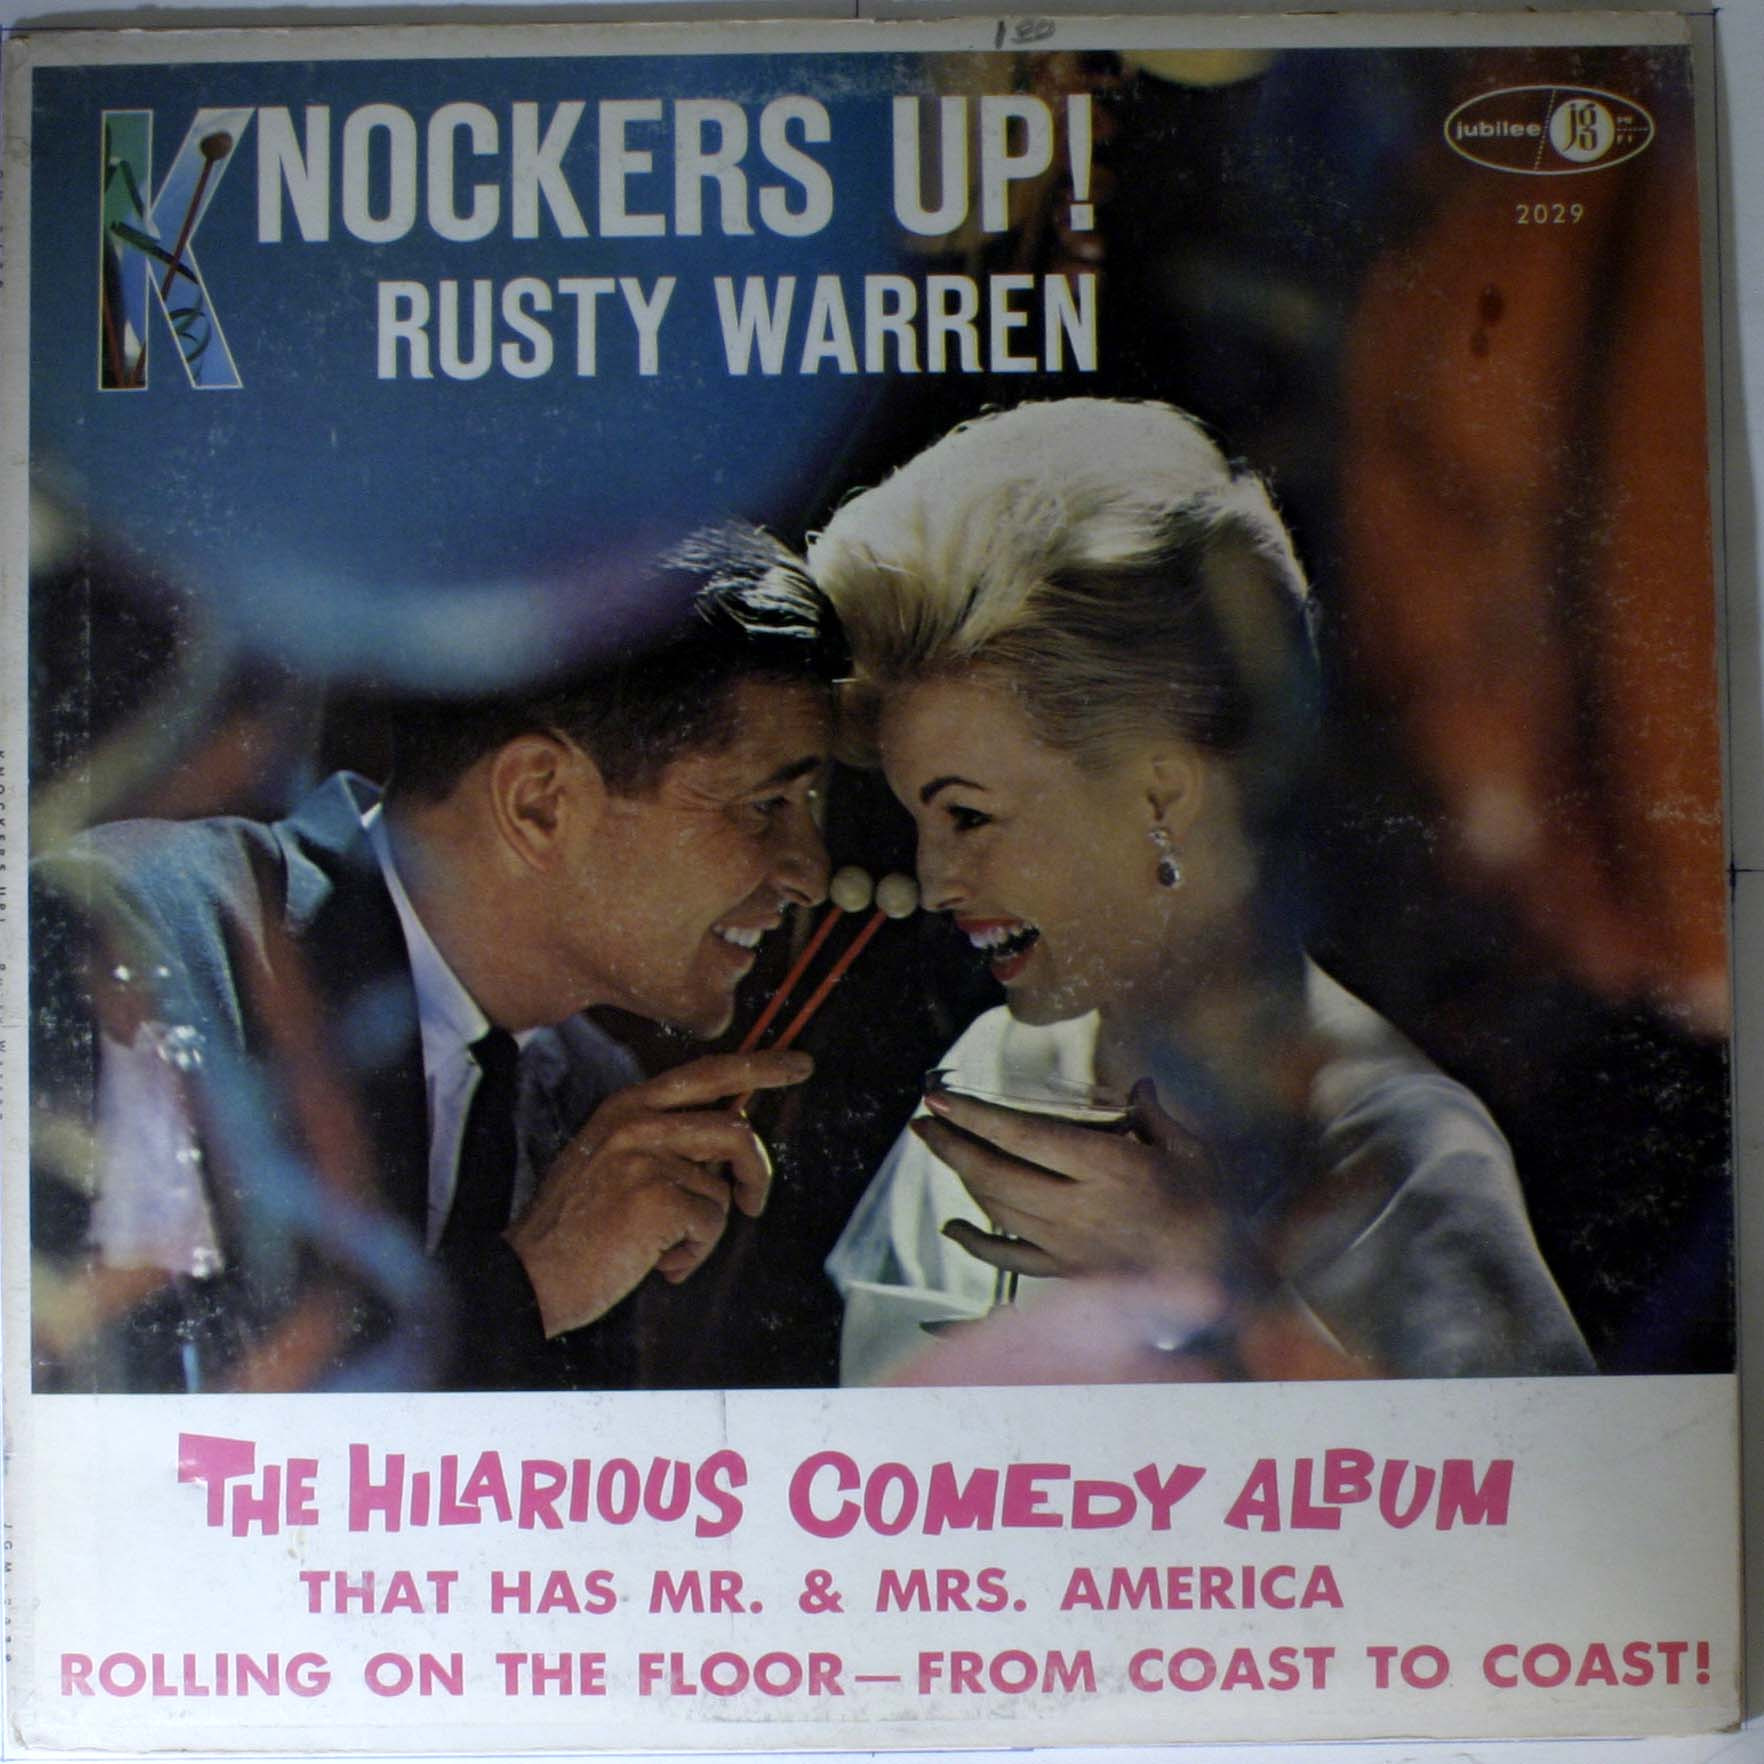 Rusty Warren - Knockers Up! LP